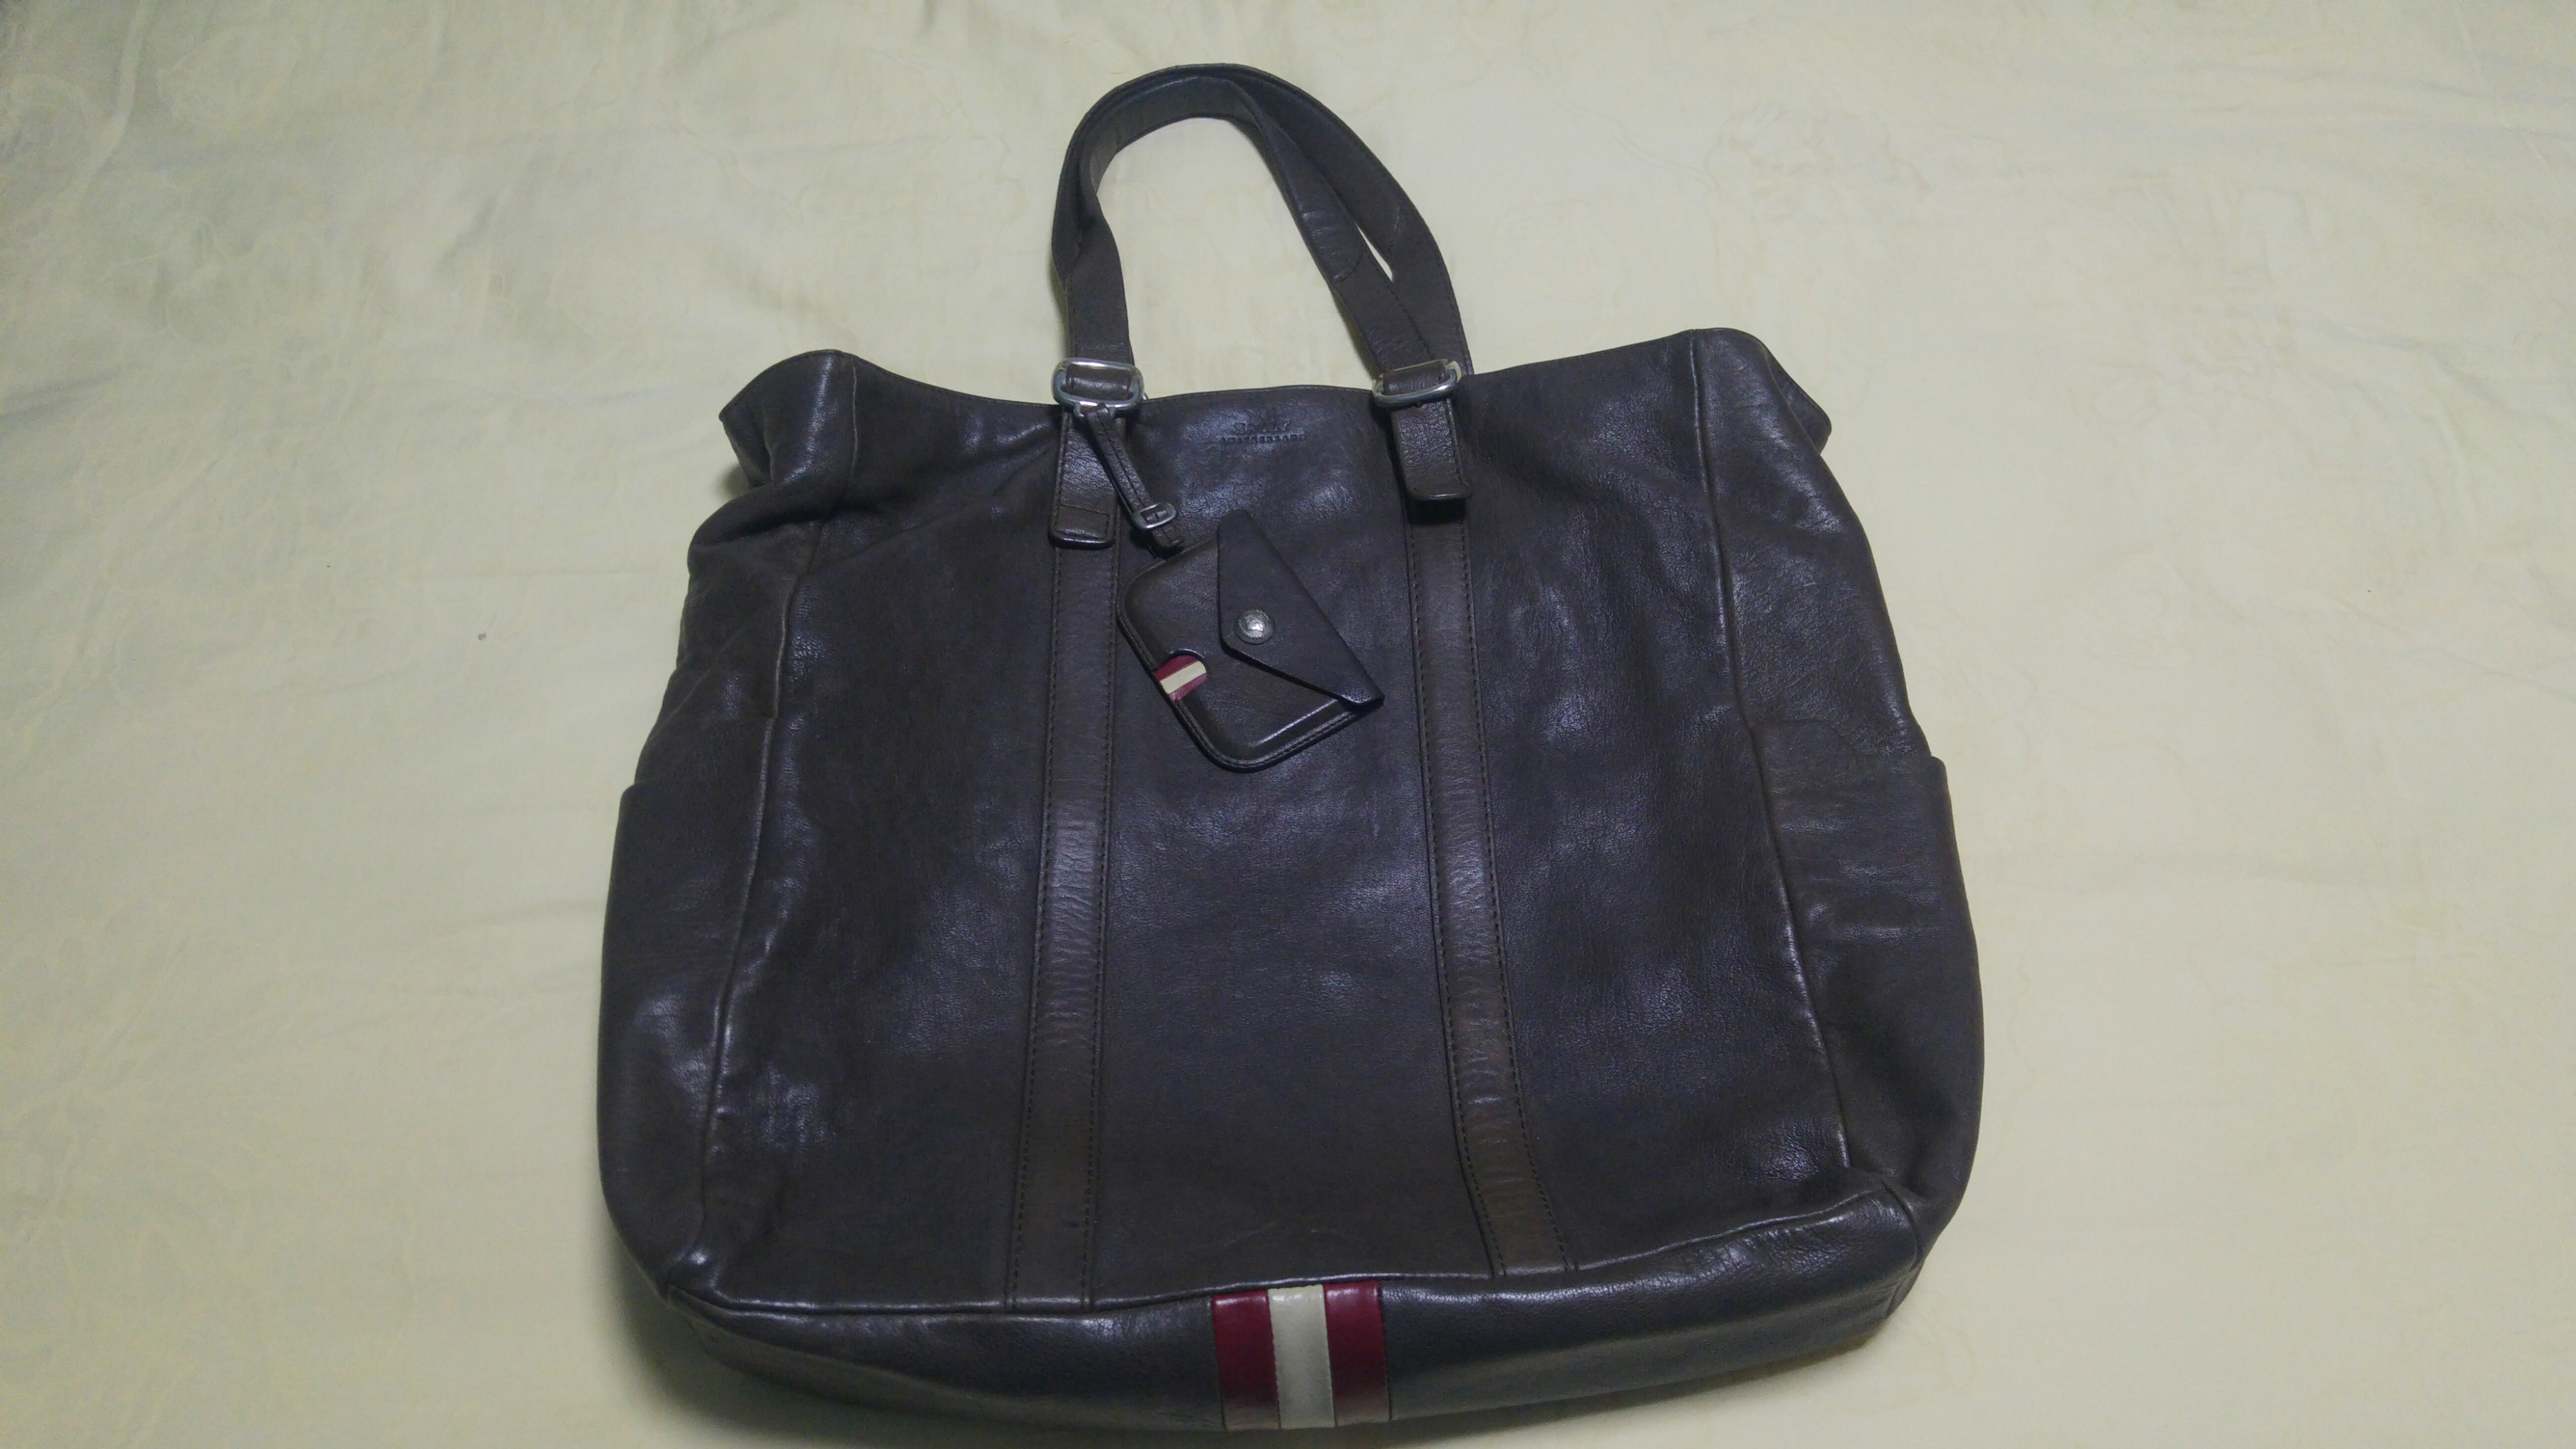 4cd73a2e3daa Authentic Bally Tote for men   women